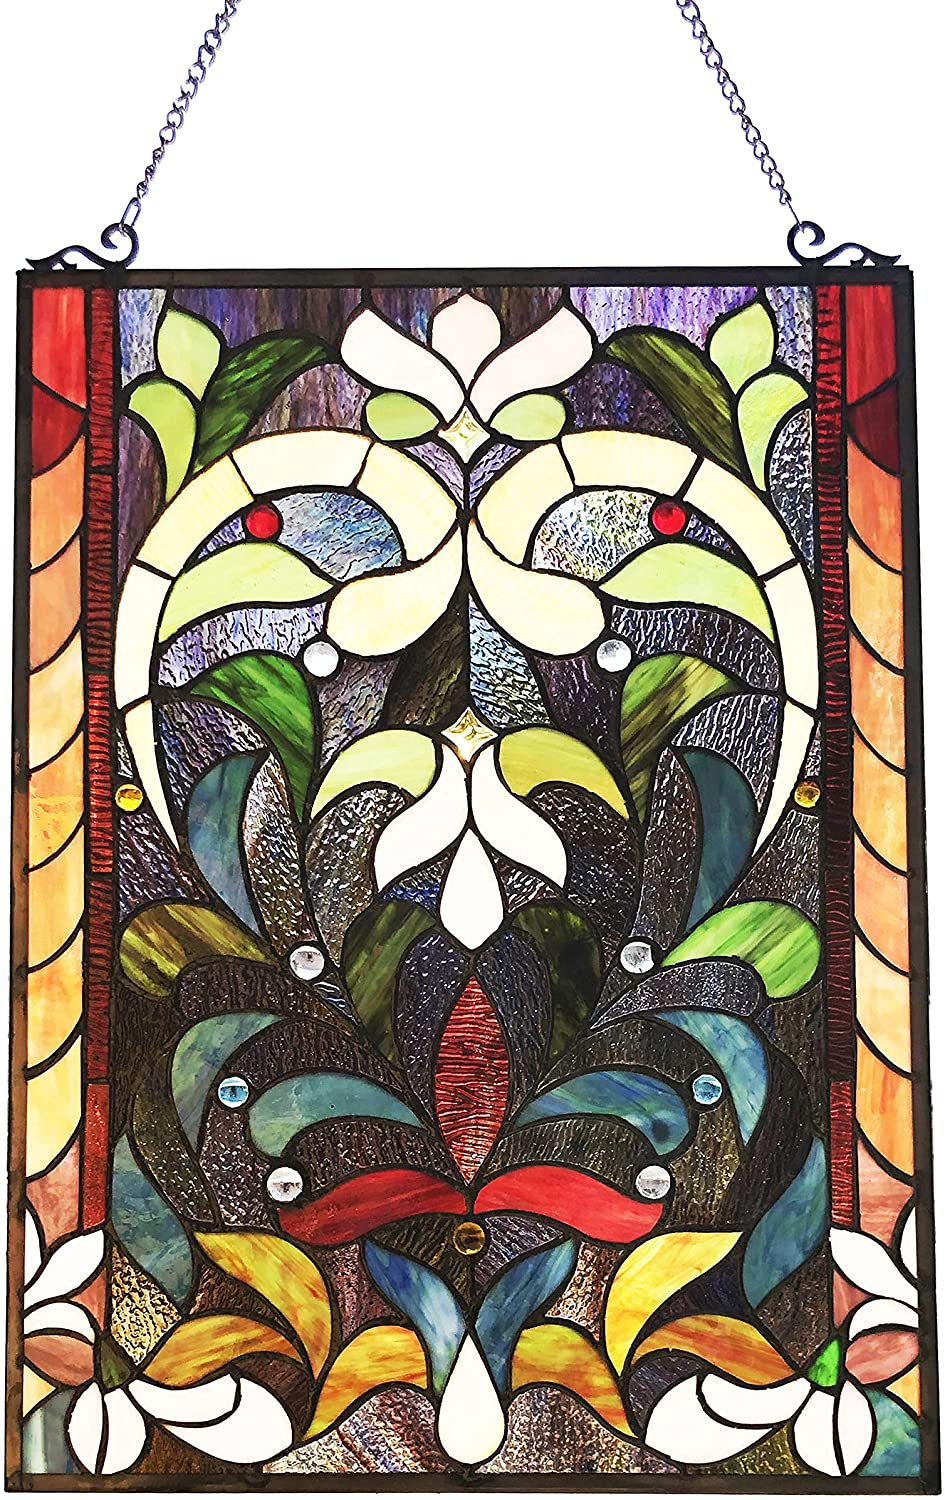 RADIANCE GOODS TIFFANY-STYLE VICTORIAN STAINED-GLASS WINDOW PANEL 24 HEIGHT